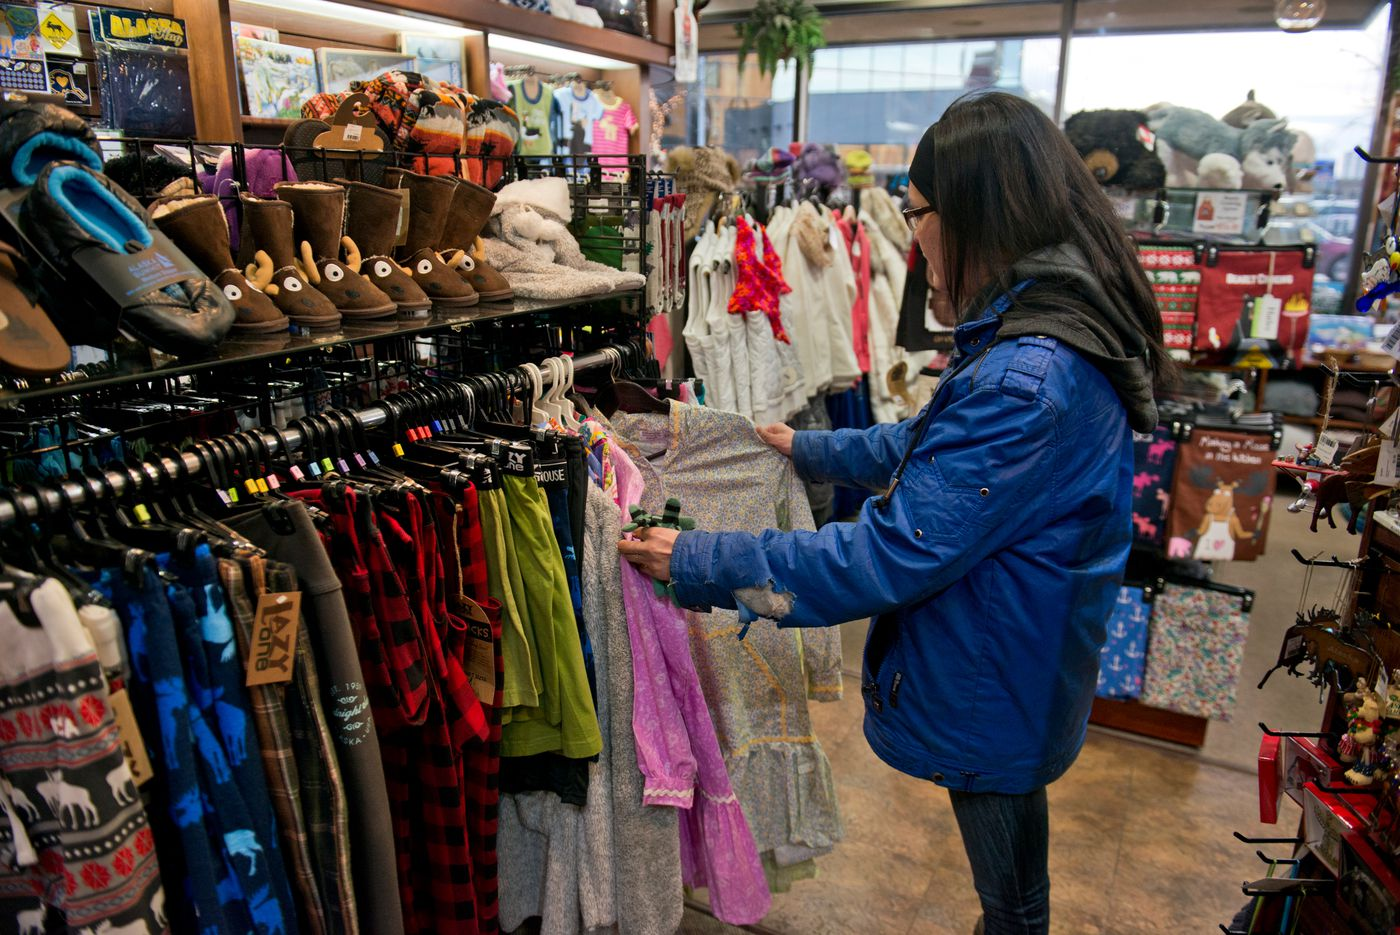 Barb Towarak shops for a kuspuk to be married in on Tuesday, December 8, 2015, two days before her wedding.